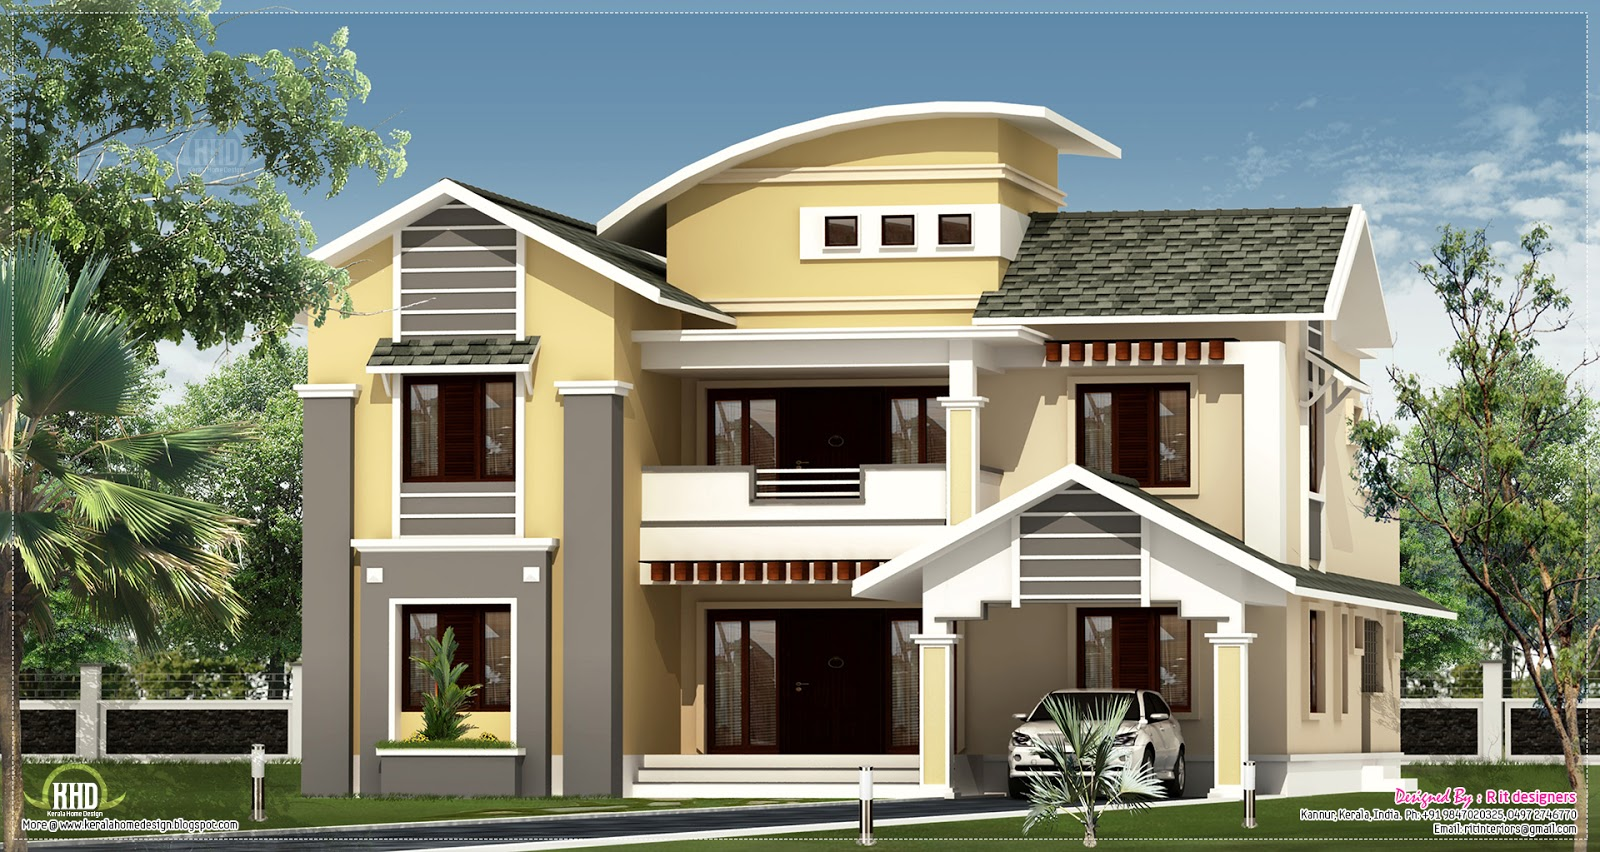 3000 home design from kannur kerala home kerala for 3000 sq ft house cost